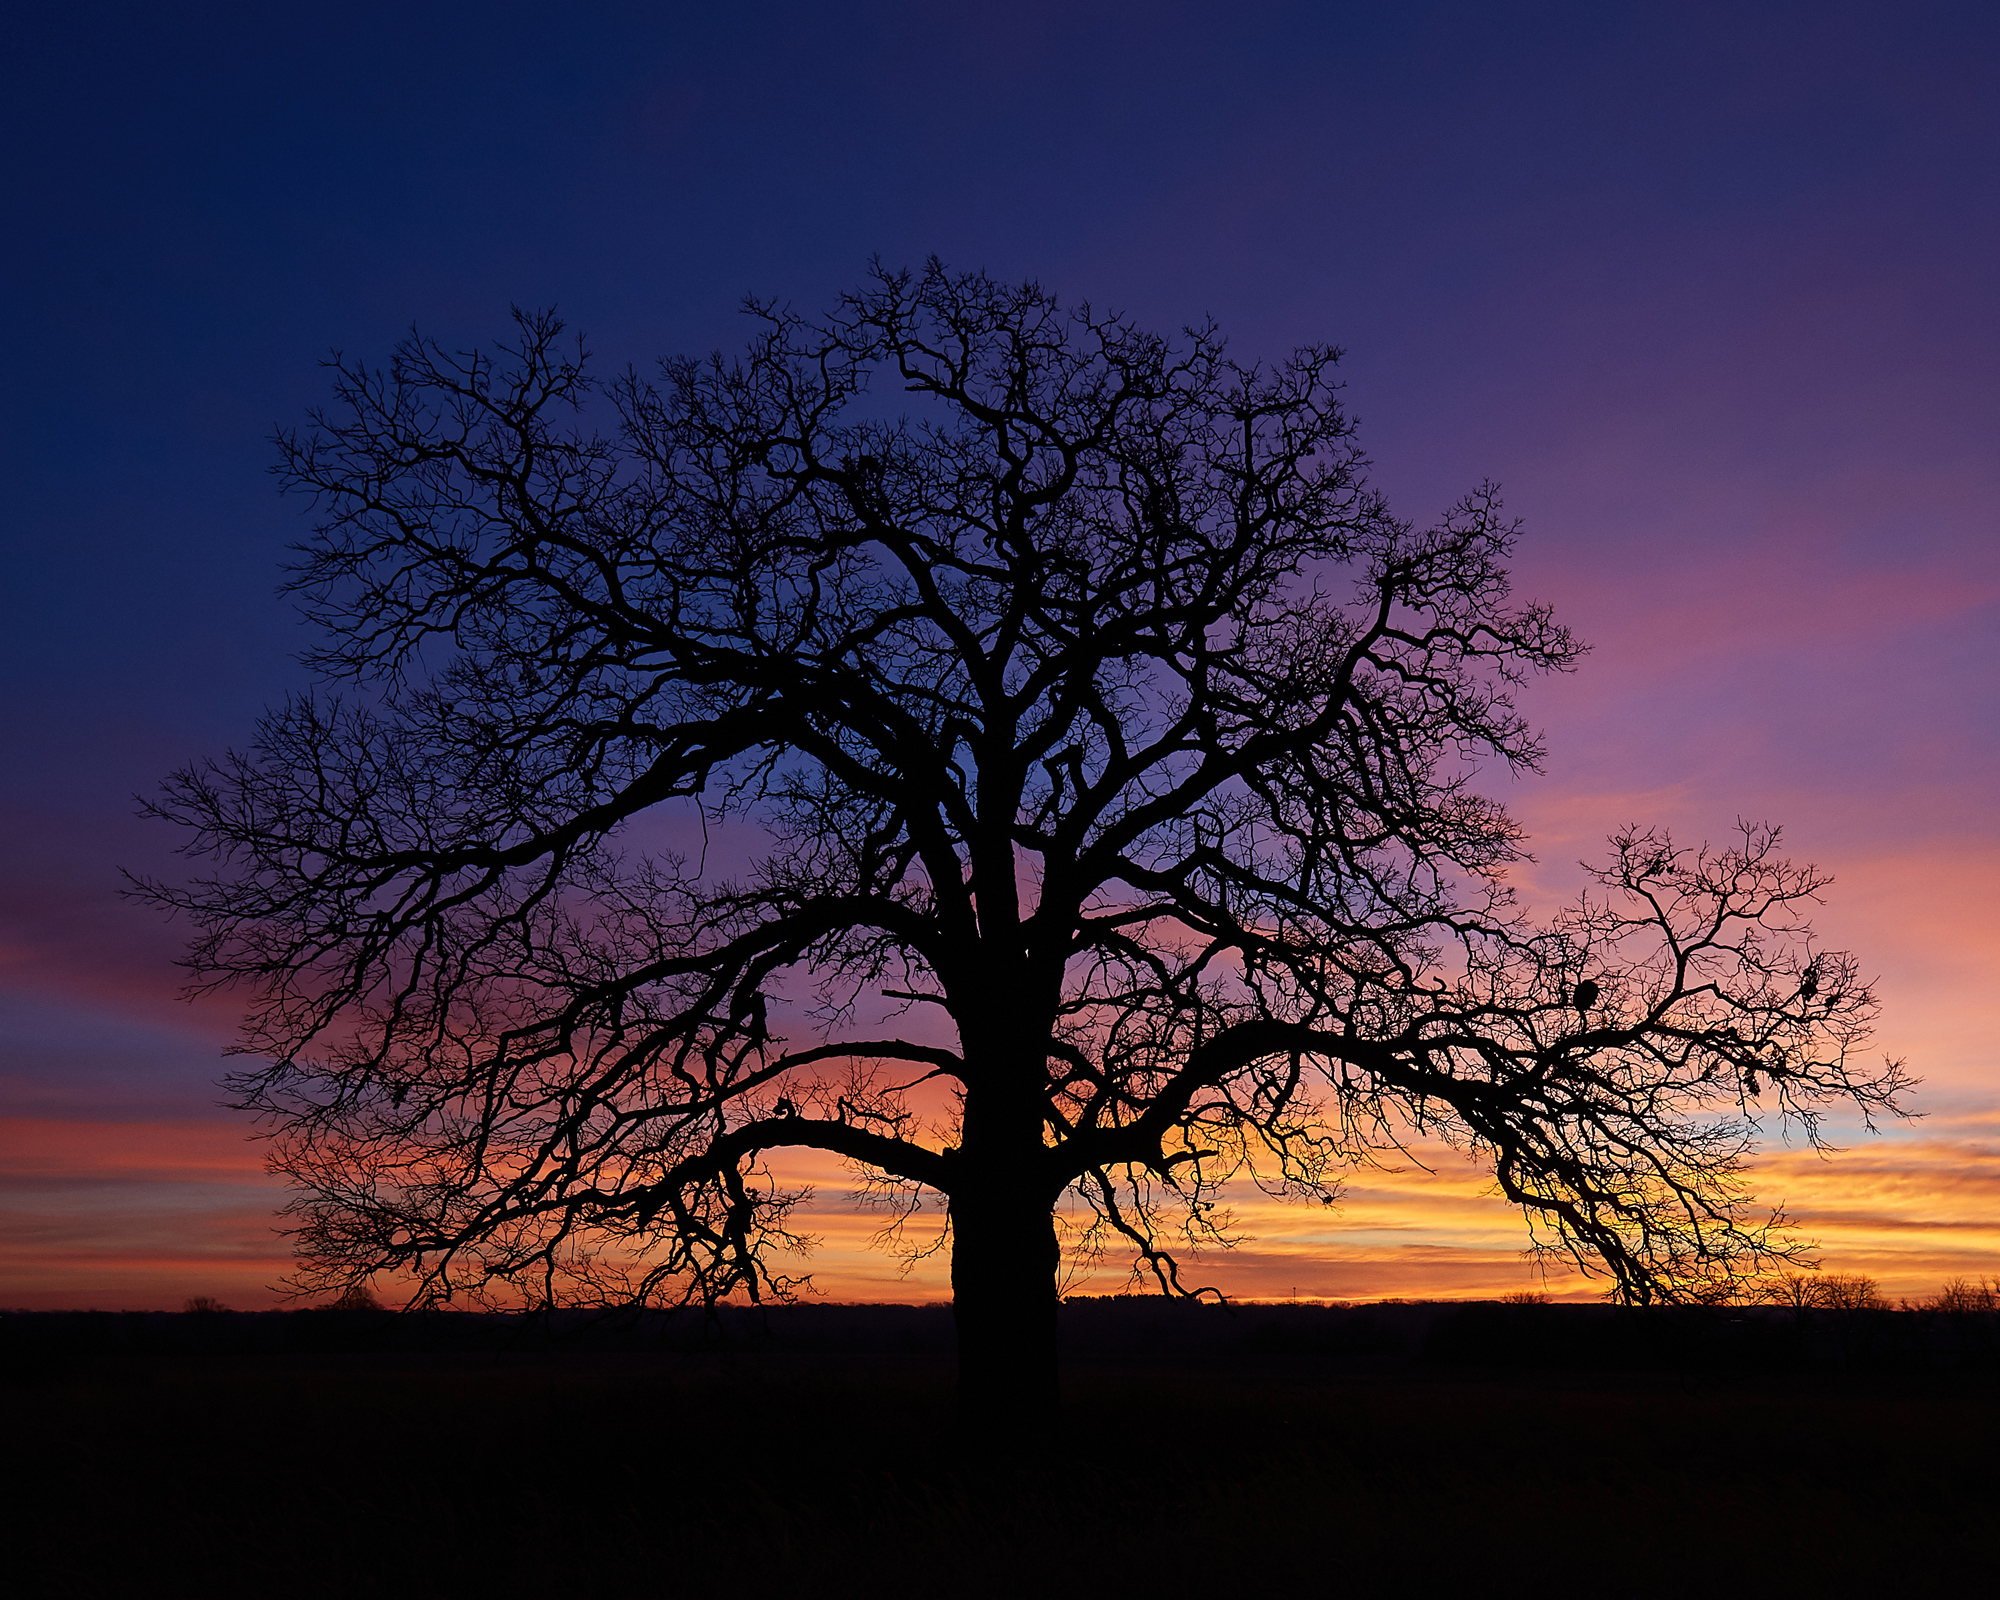 Sunrise Tree, No. 2